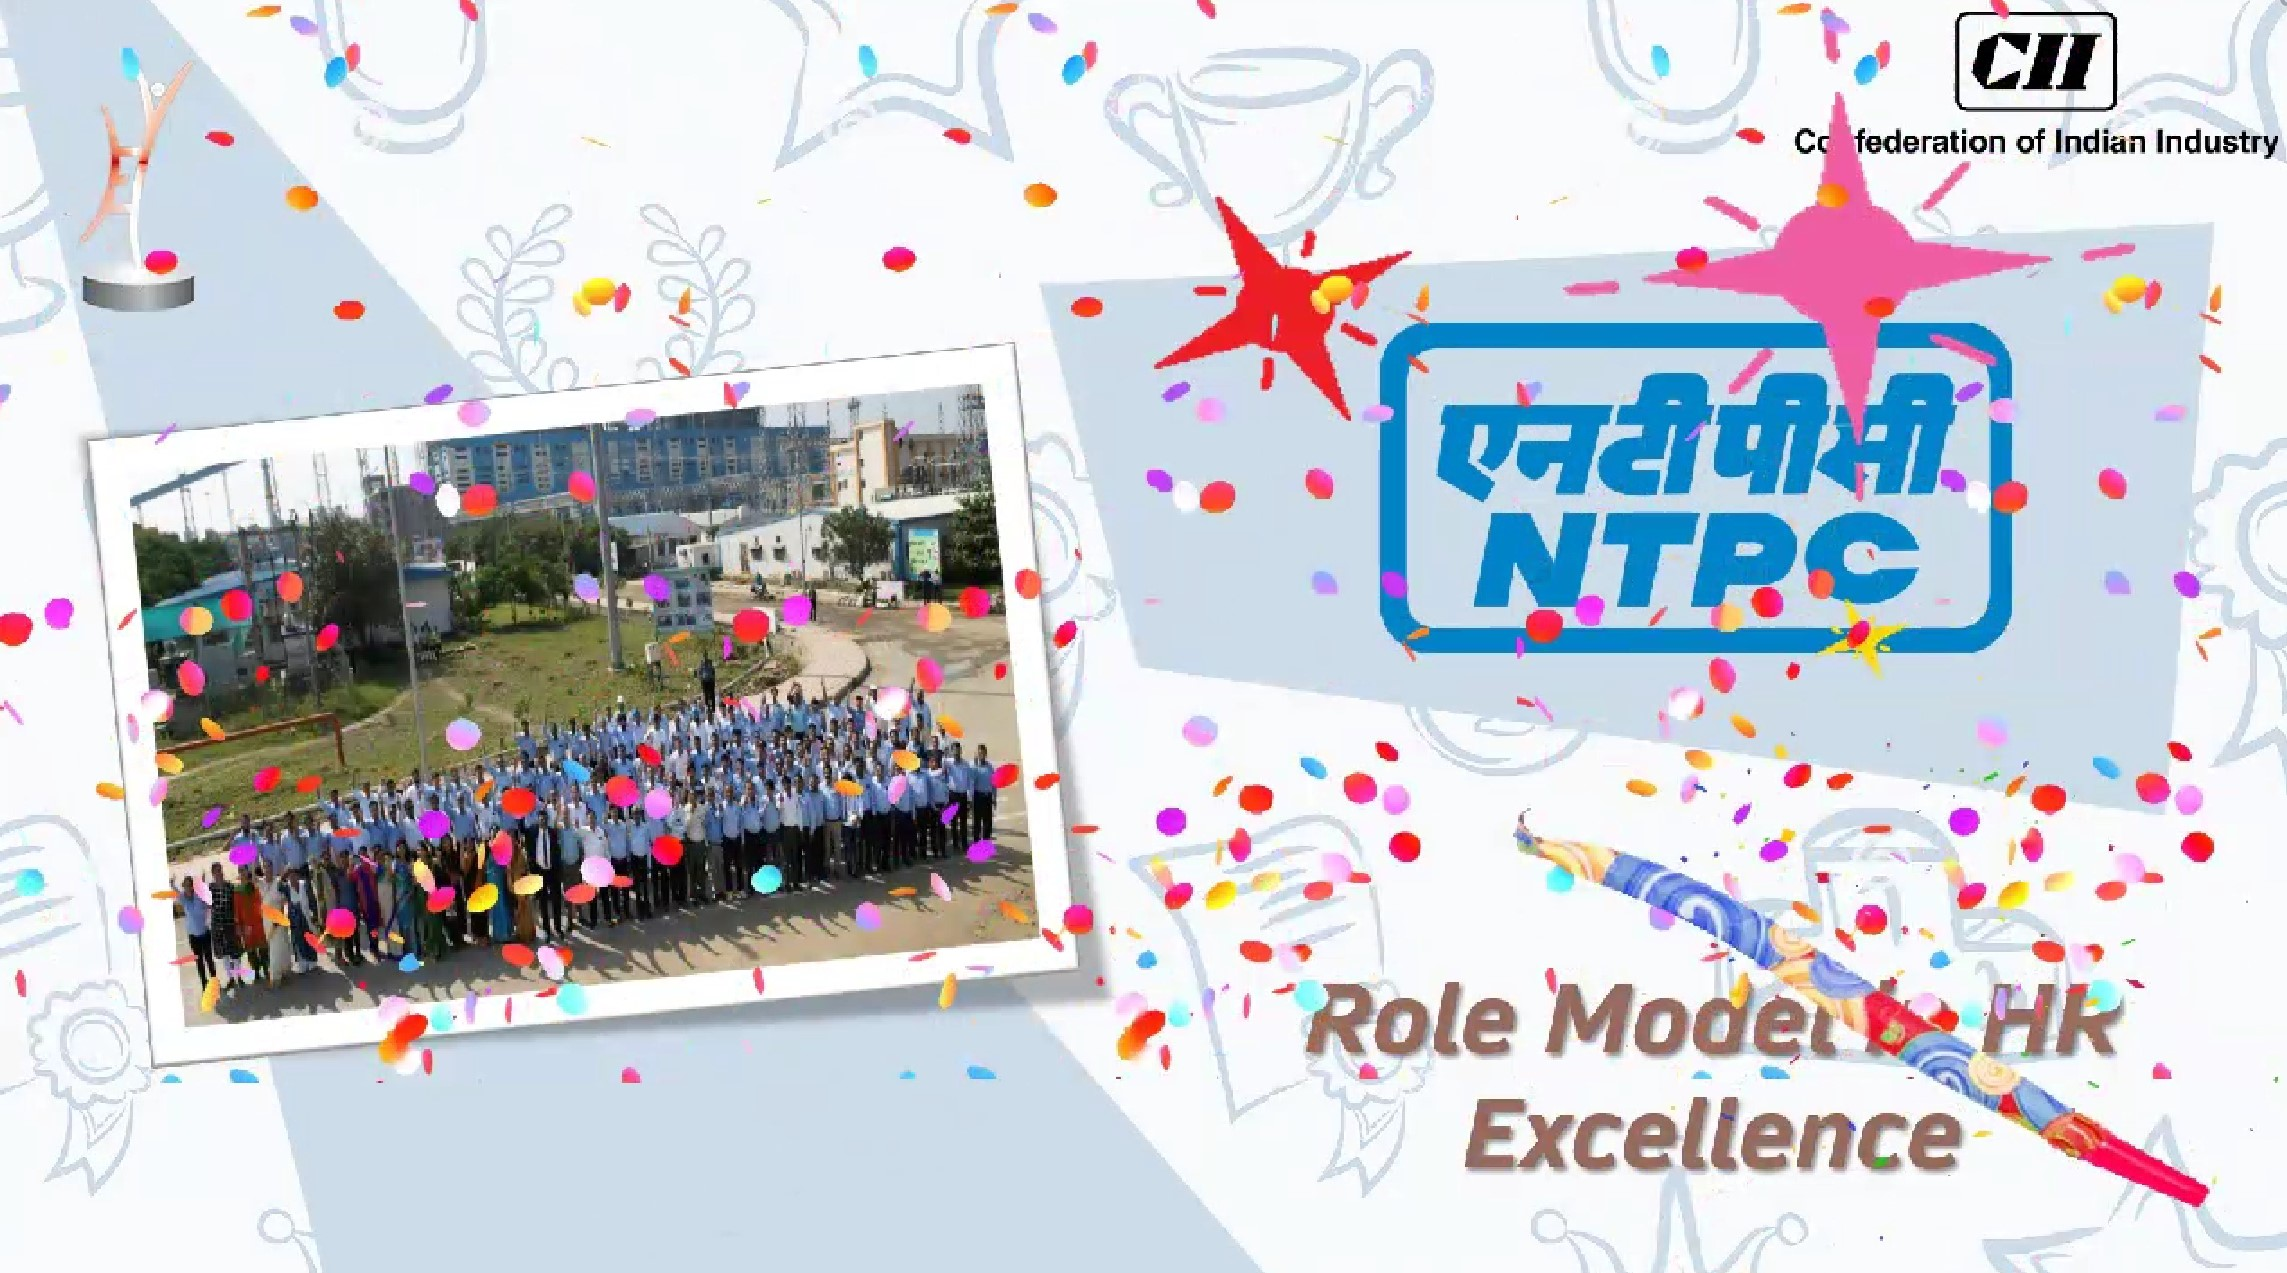 NTPC conferred 'Role Model' award at 11th CII National HR Excellence Award 2020-21